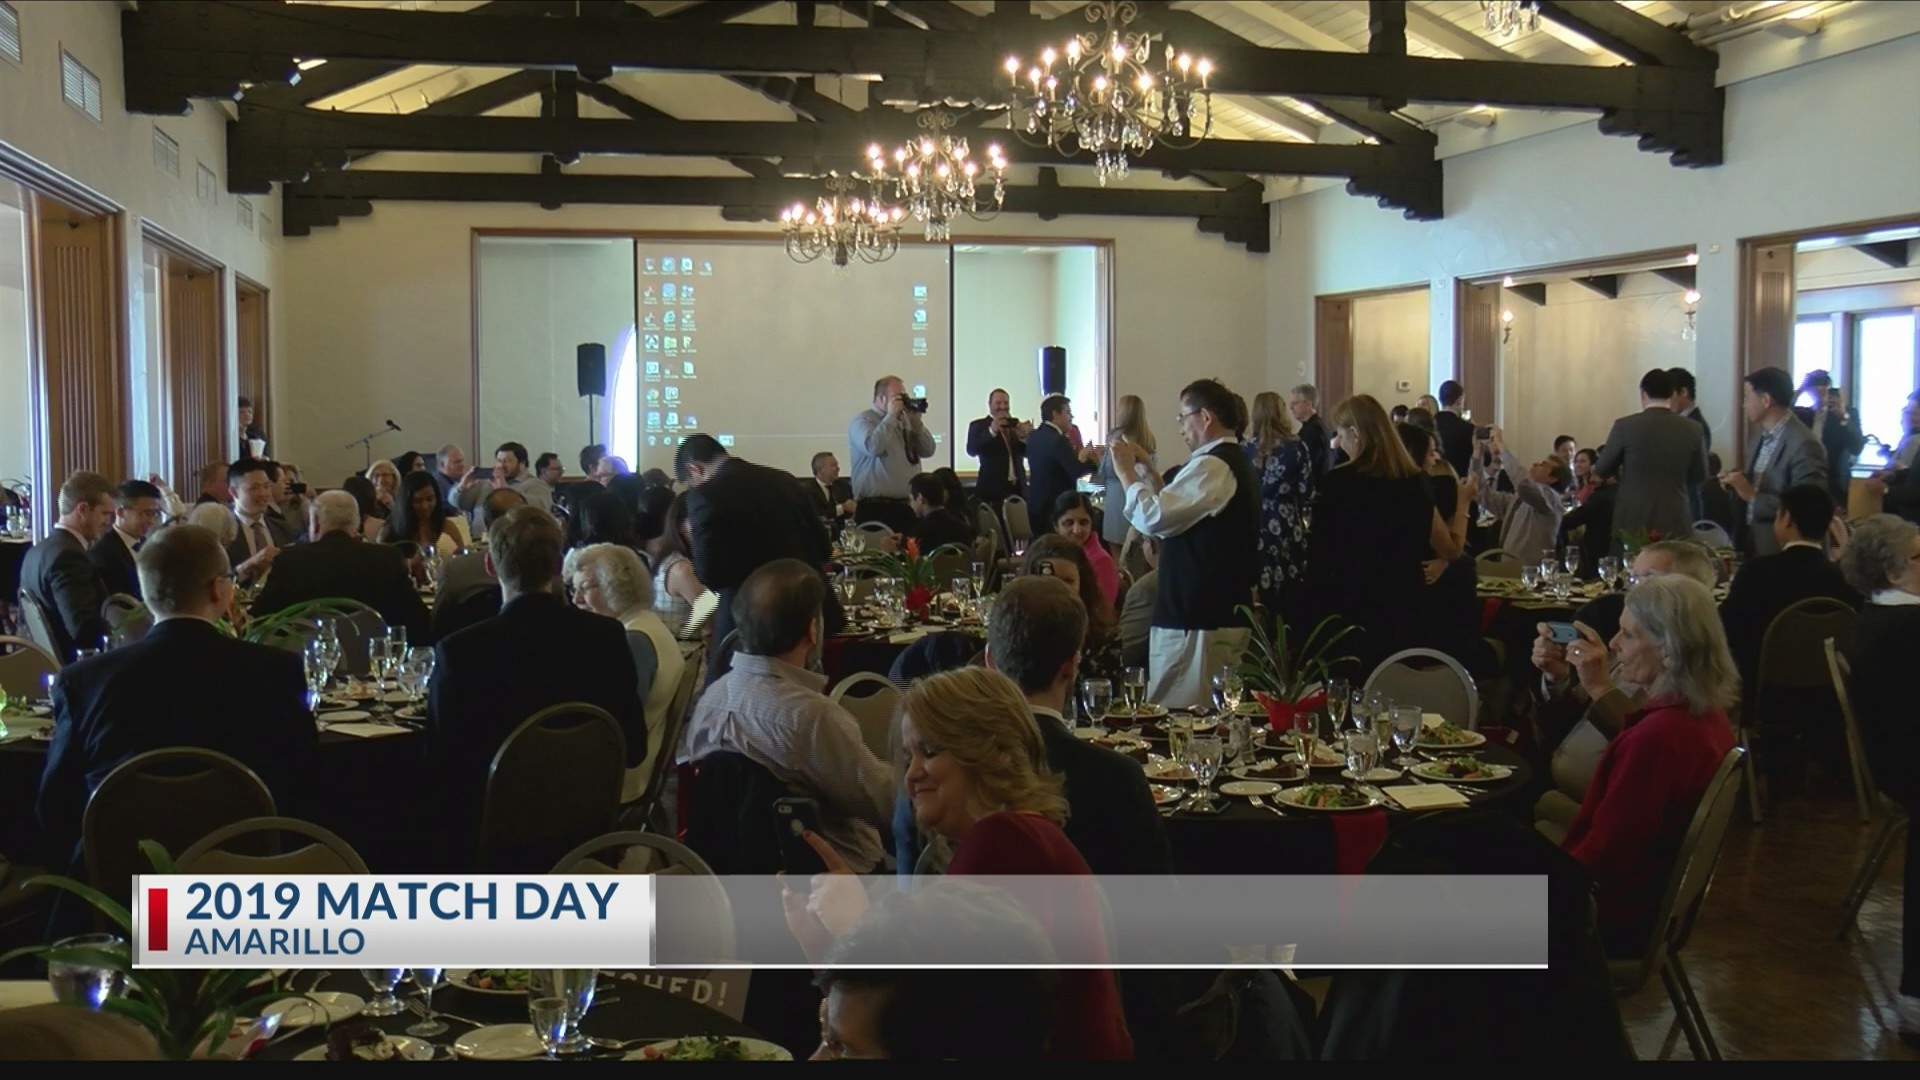 Match Day for Medical Students at Texas Tech University Health Sciences Center